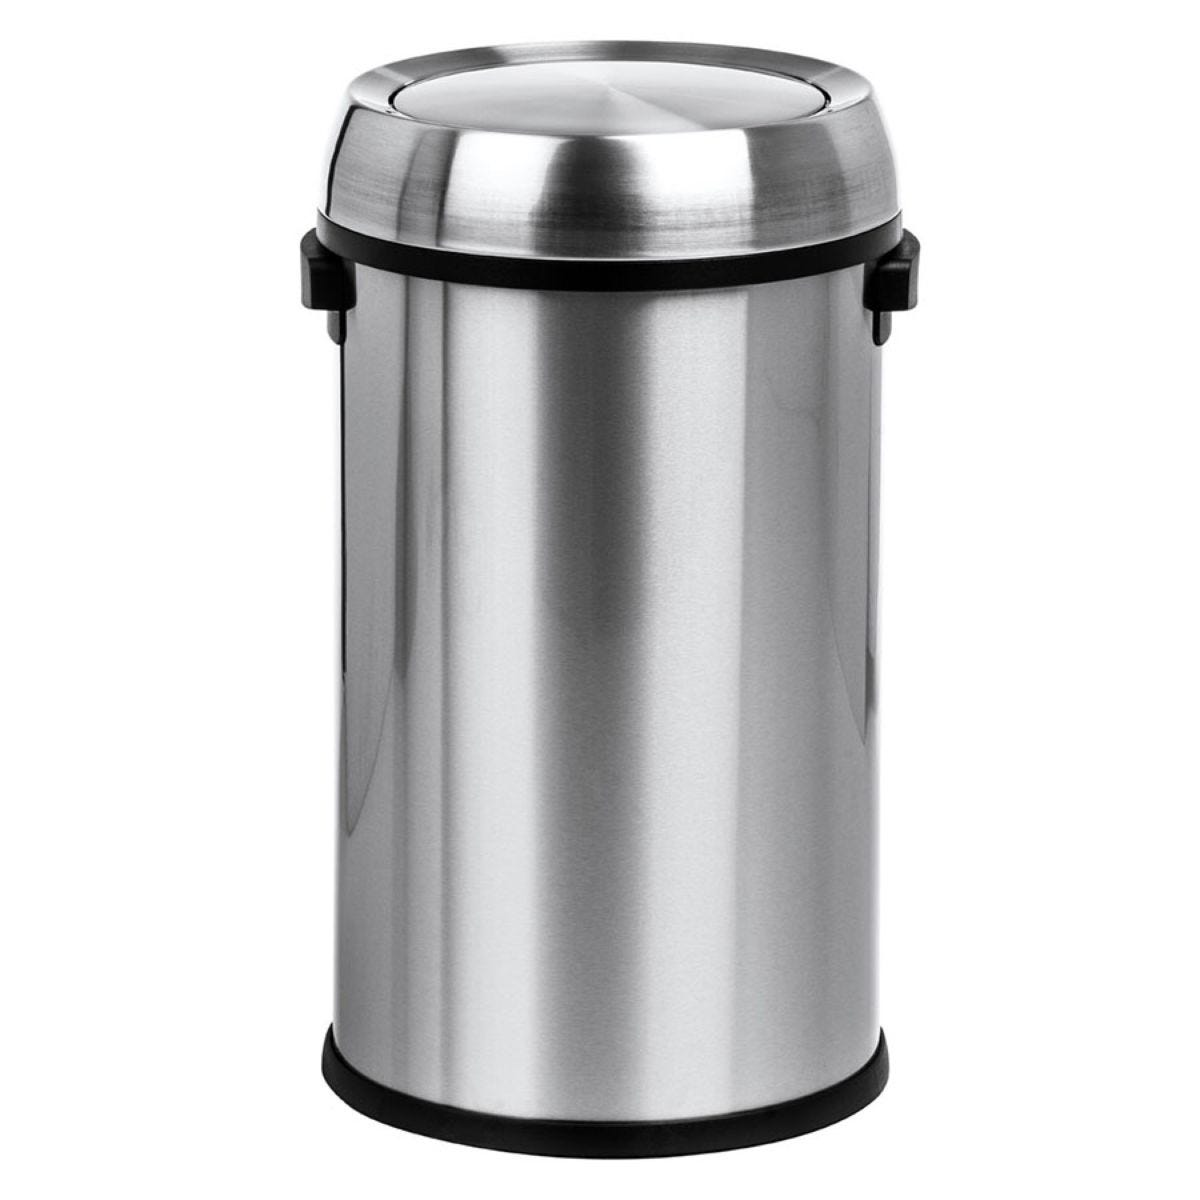 Premier Housewares 65L Swing Bin - Stainless Steel